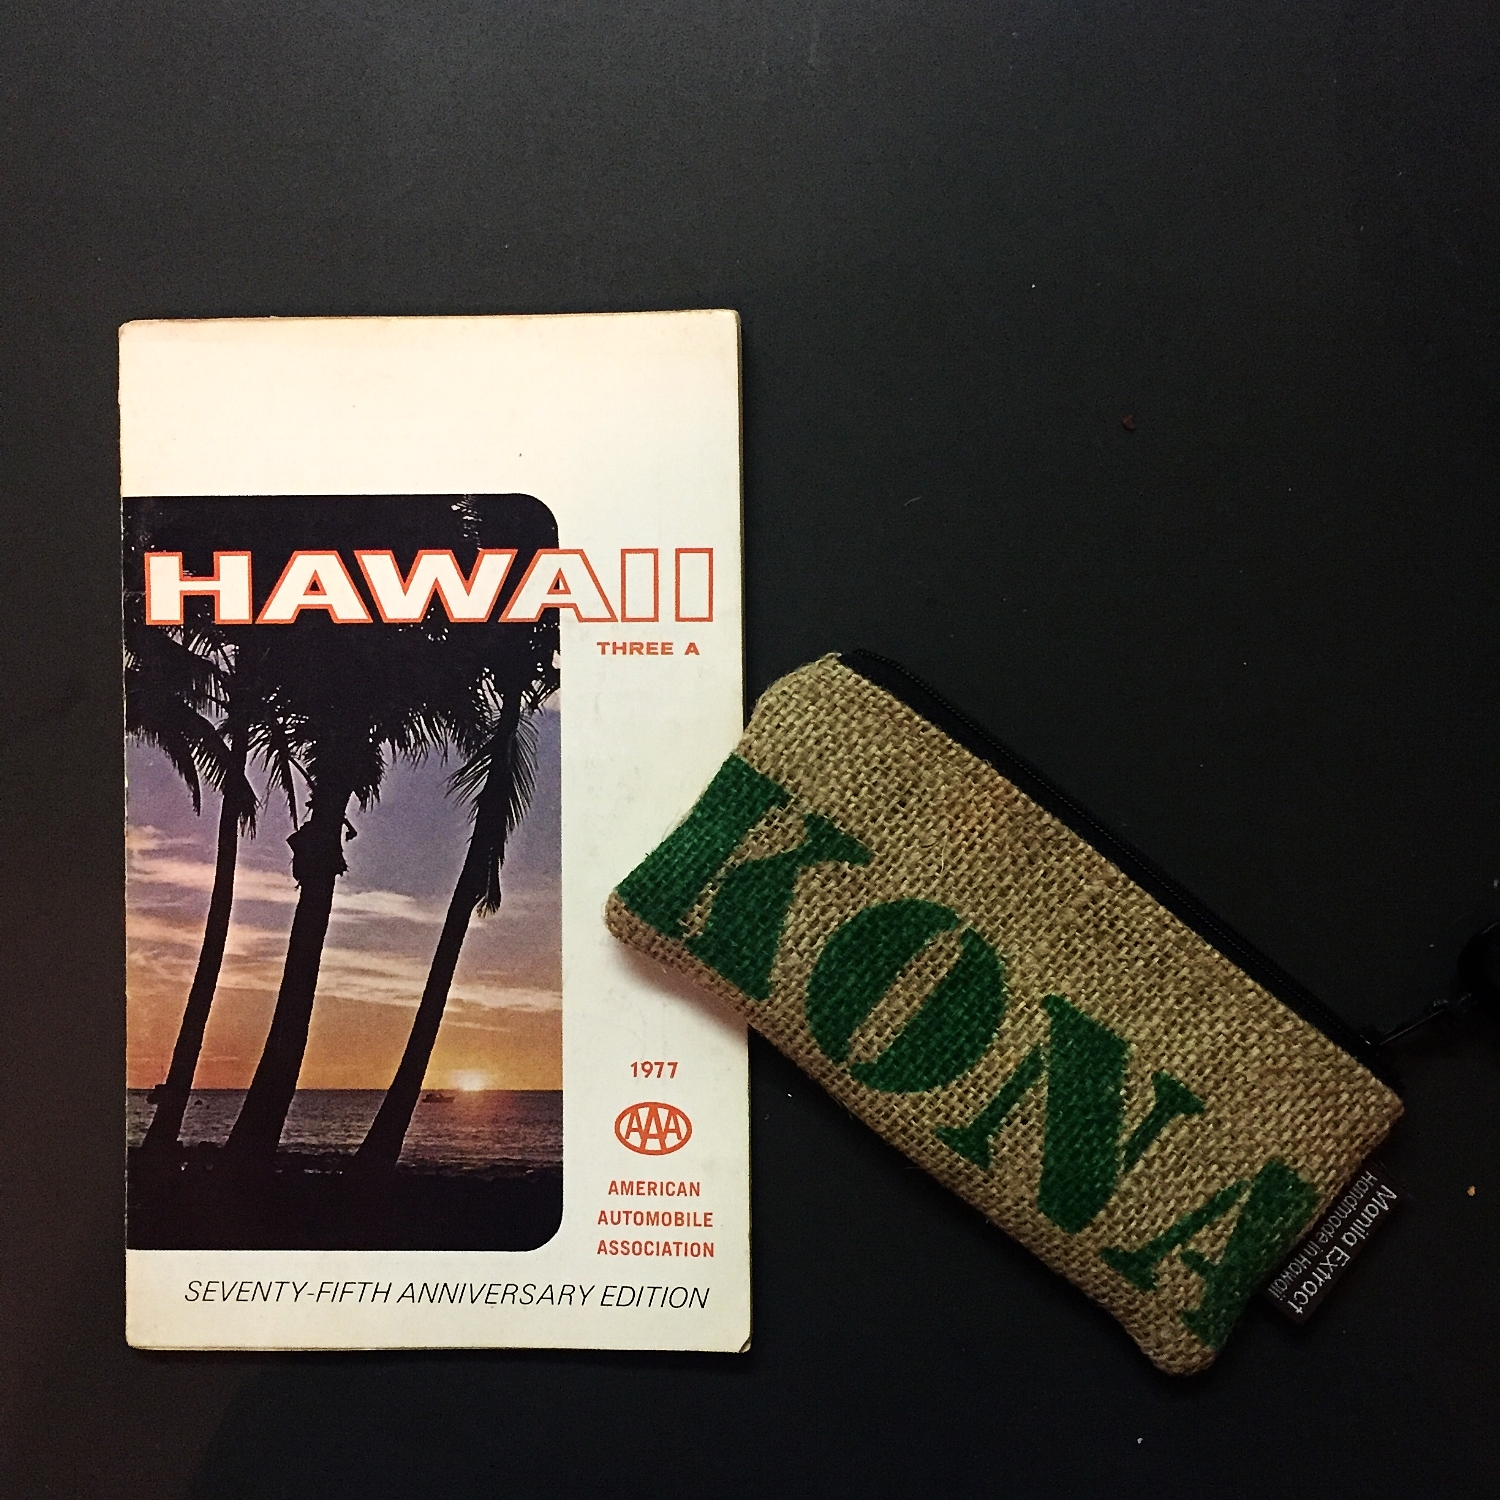 Photo: Vintage 1977 AAA Hawaii Tour Book (Found in parent's basement from my Dad's trip to Hawaii in the 70s)